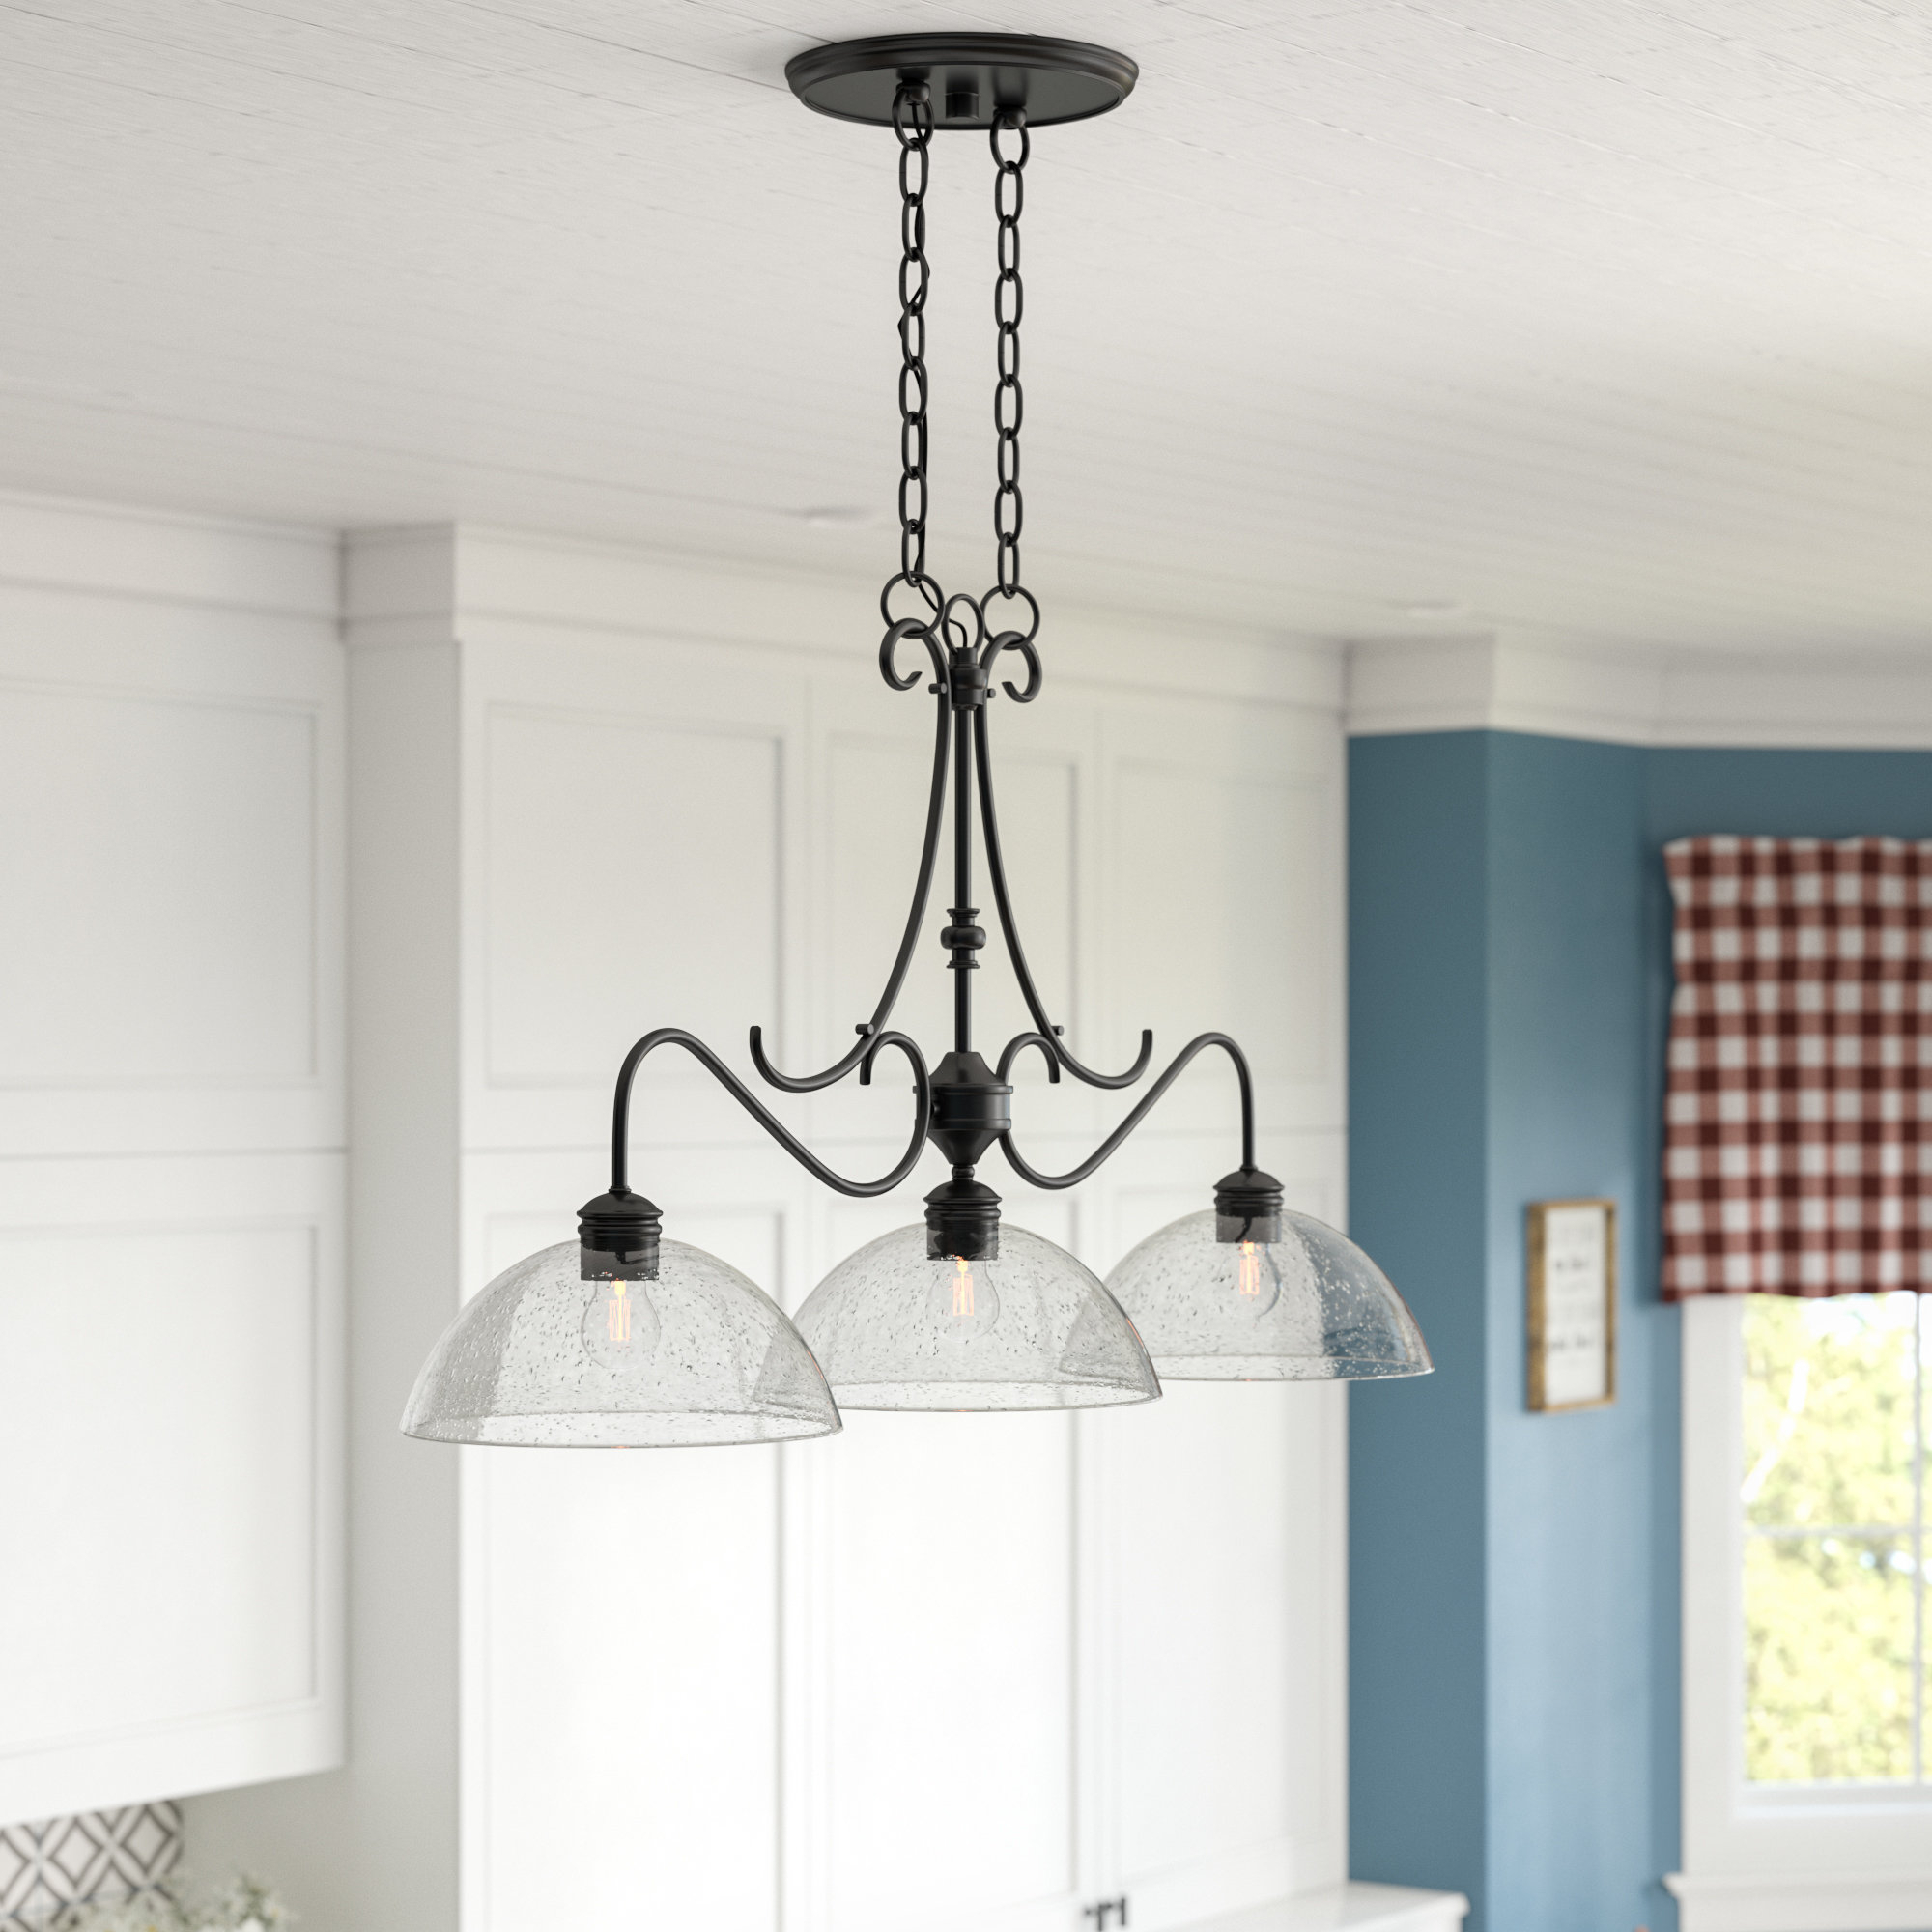 Grullon Scroll 1 Light Single Bell Pendants In Preferred Sheila 3 Light Kitchen Island Dome Pendant (View 21 of 25)